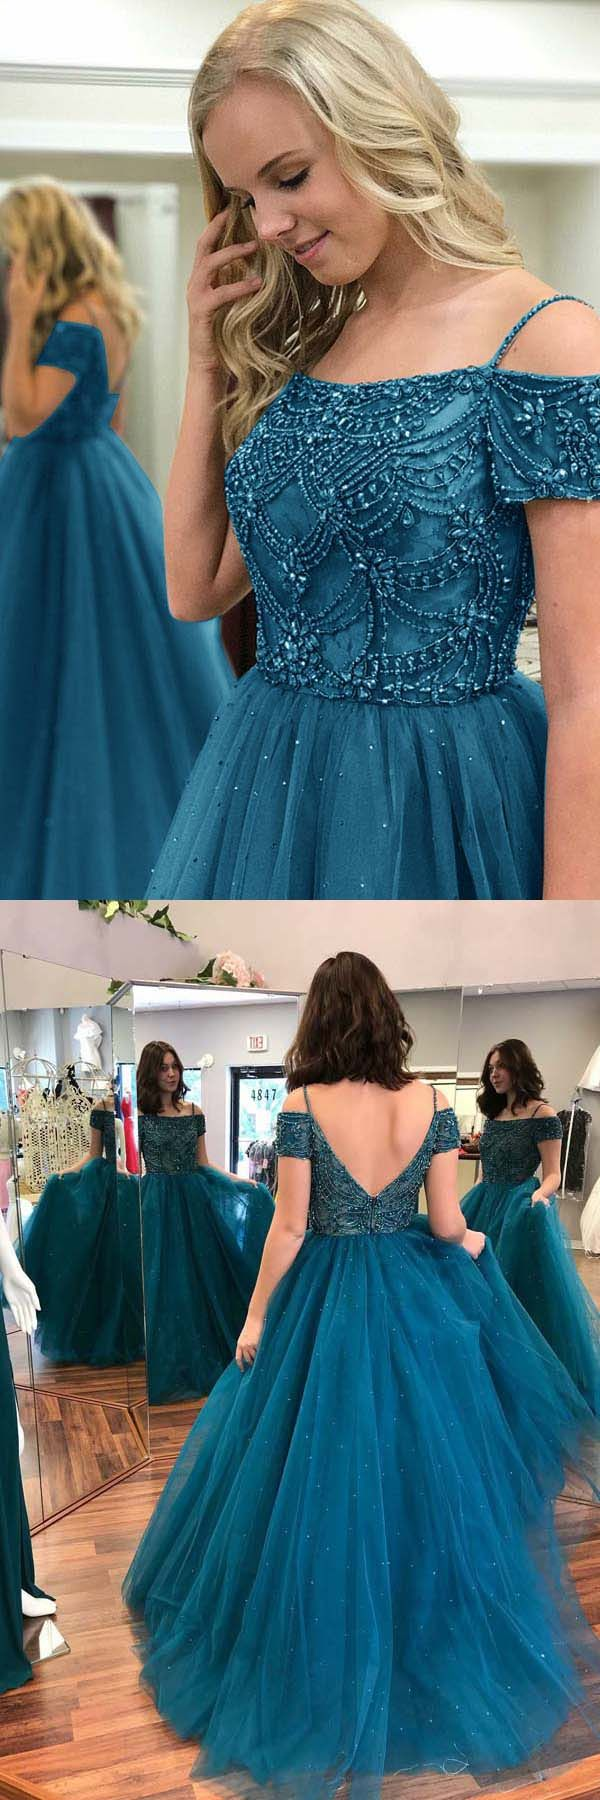 Ball Gown Off-the-Shoulder Dark Blue Tulle Prom Dress with Beading ...